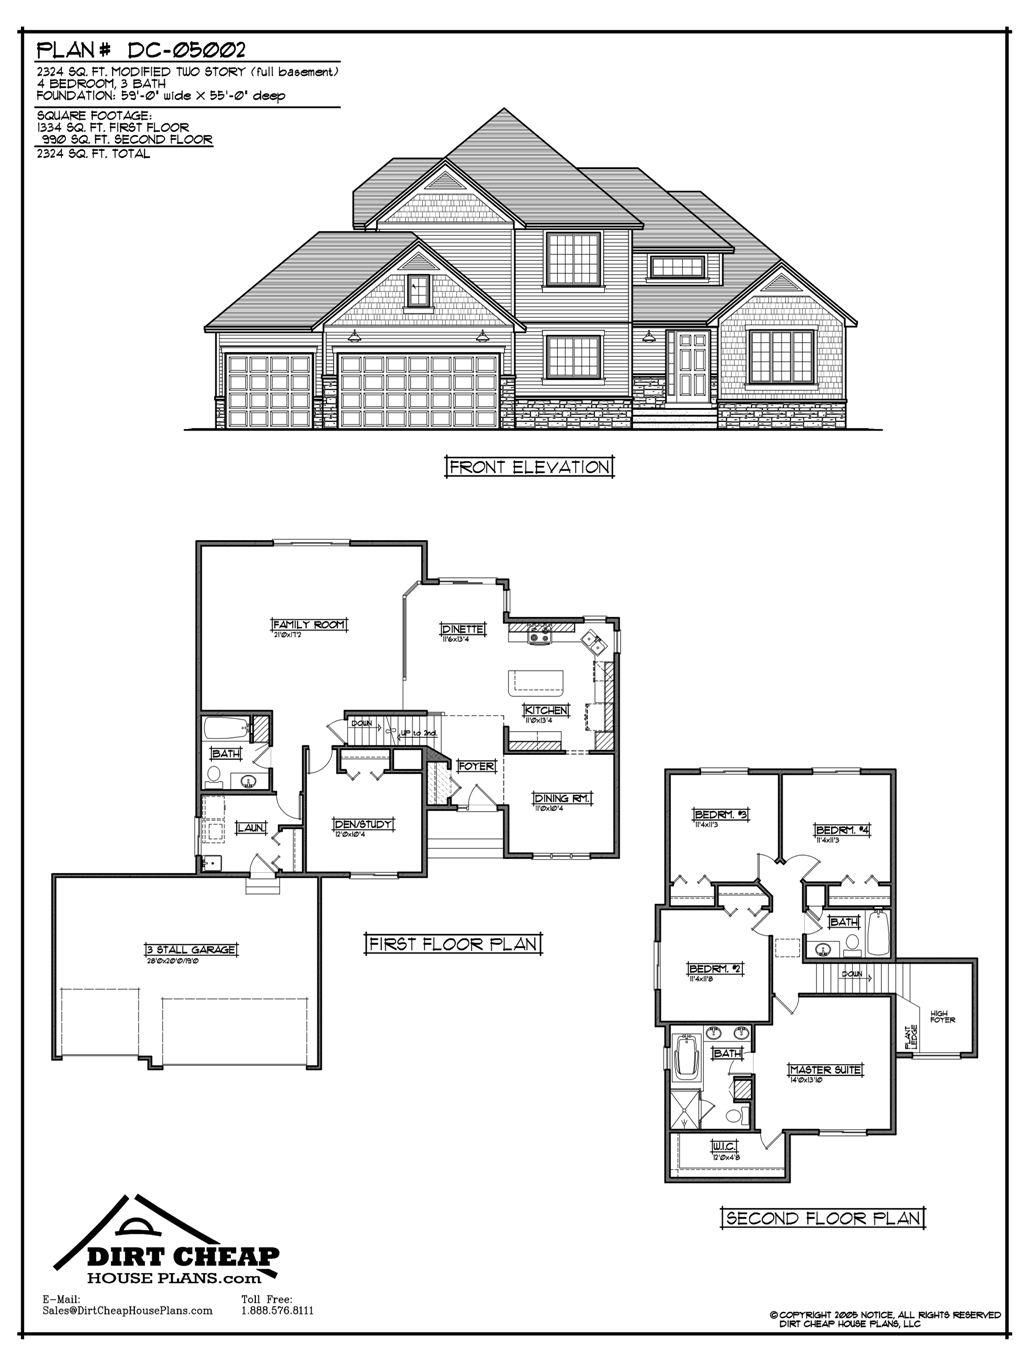 2 story house floor plans inexpensive two story house plans dc 05002 modified two story full basement home design 7674